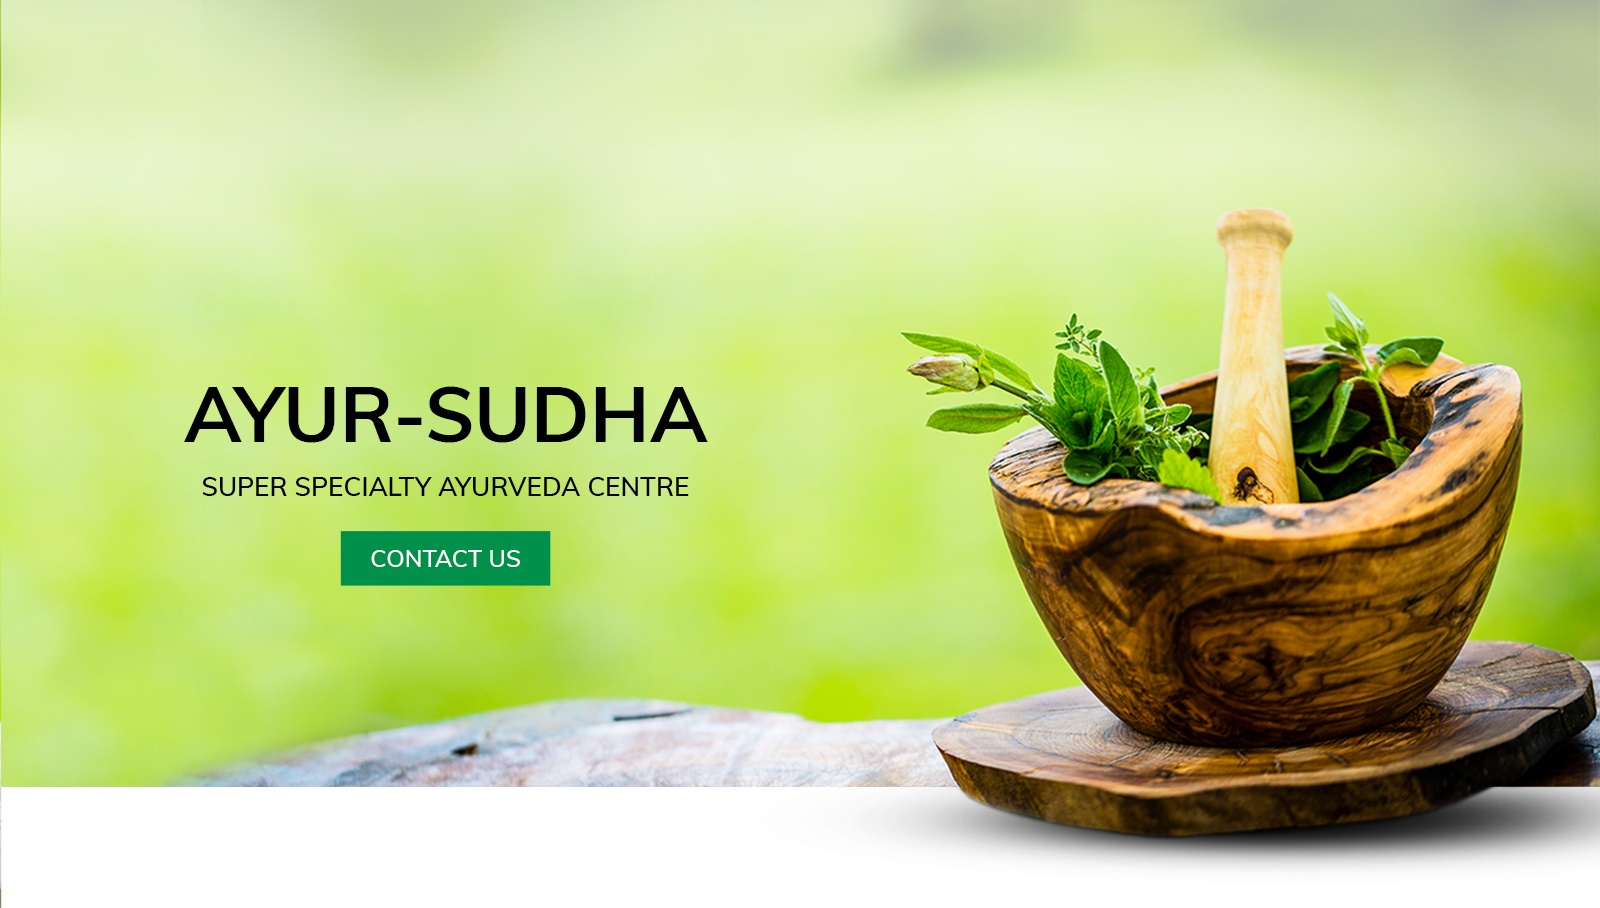 AYUR-SUDHA - Super Speciality Ayurveda Center